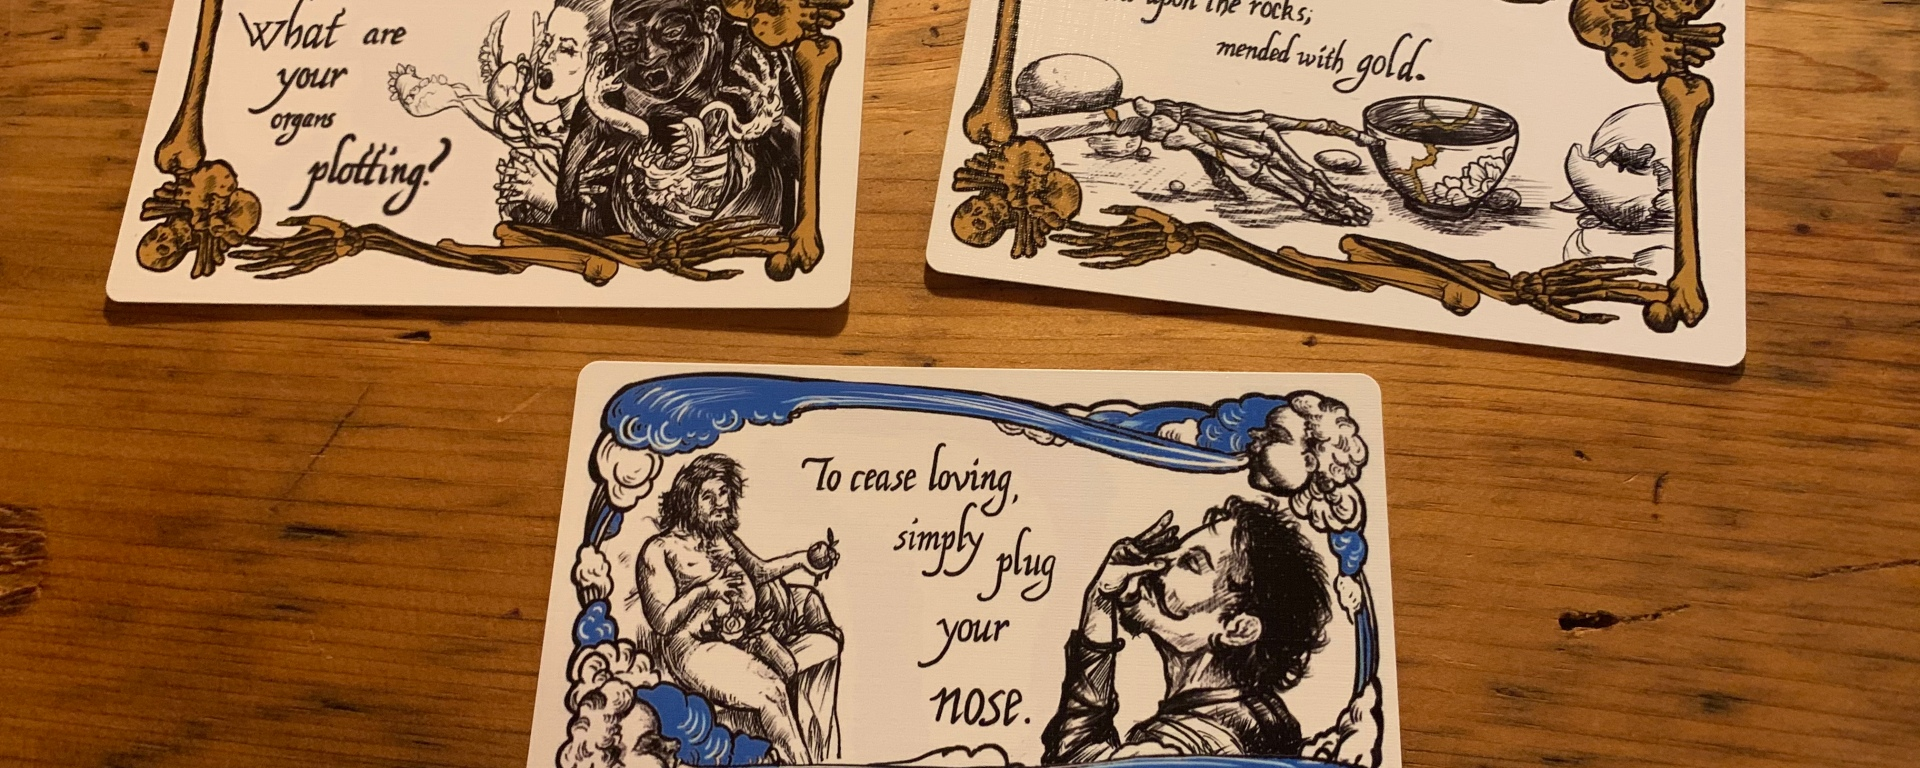 Three Cards from the Negocios Infernales Deck Used to Write This Poem